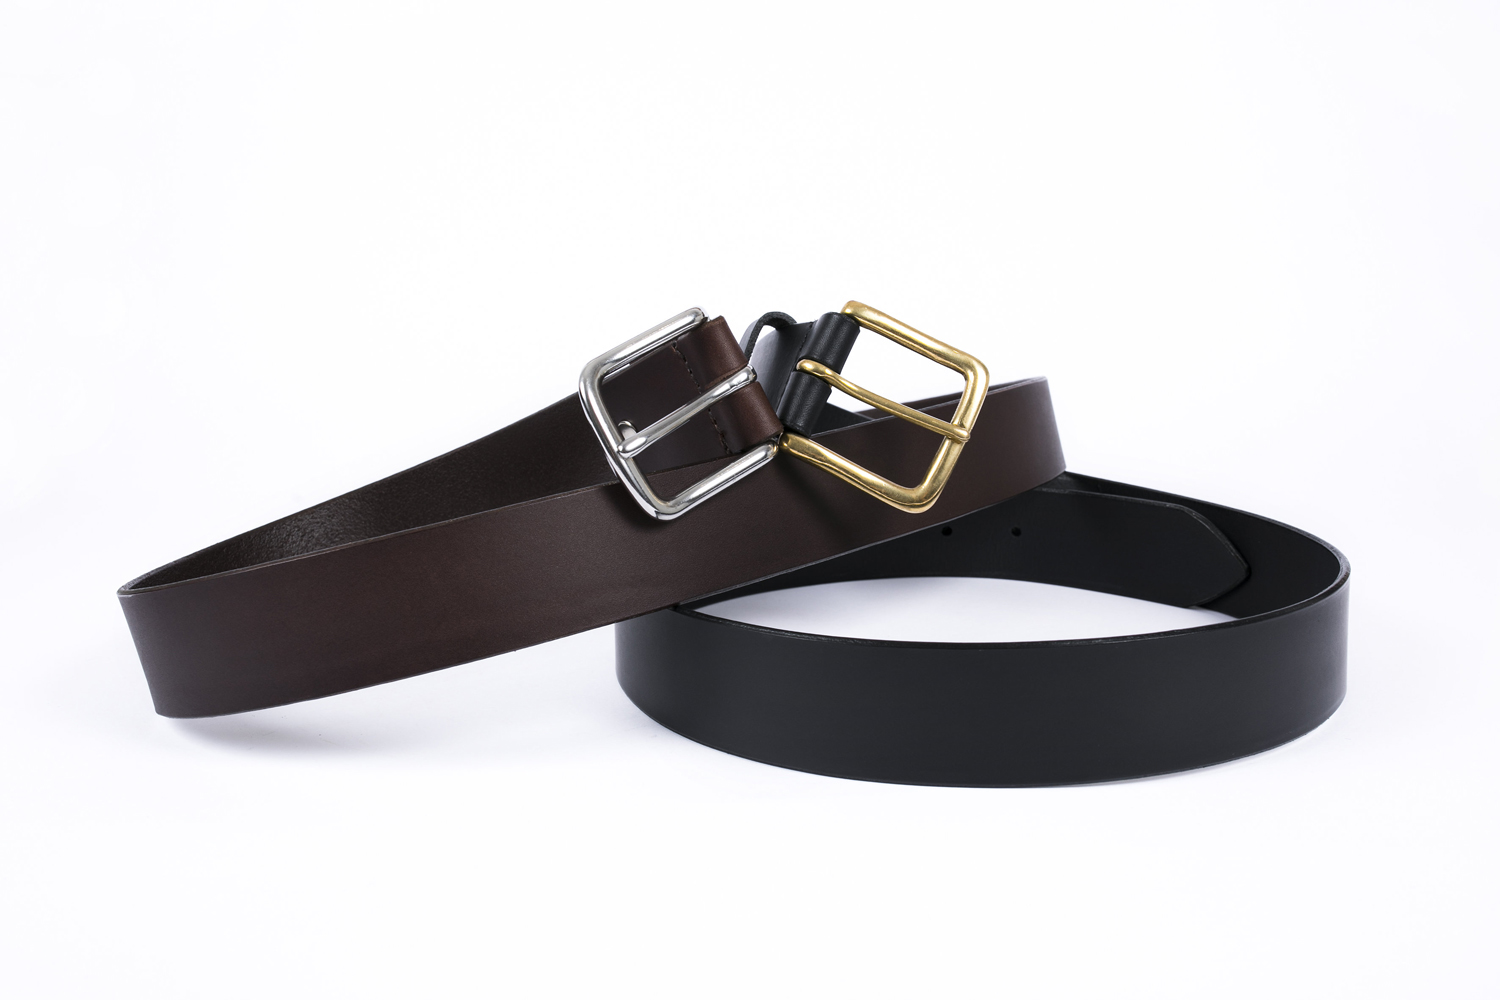 Vegetable Tanned Leather Belts